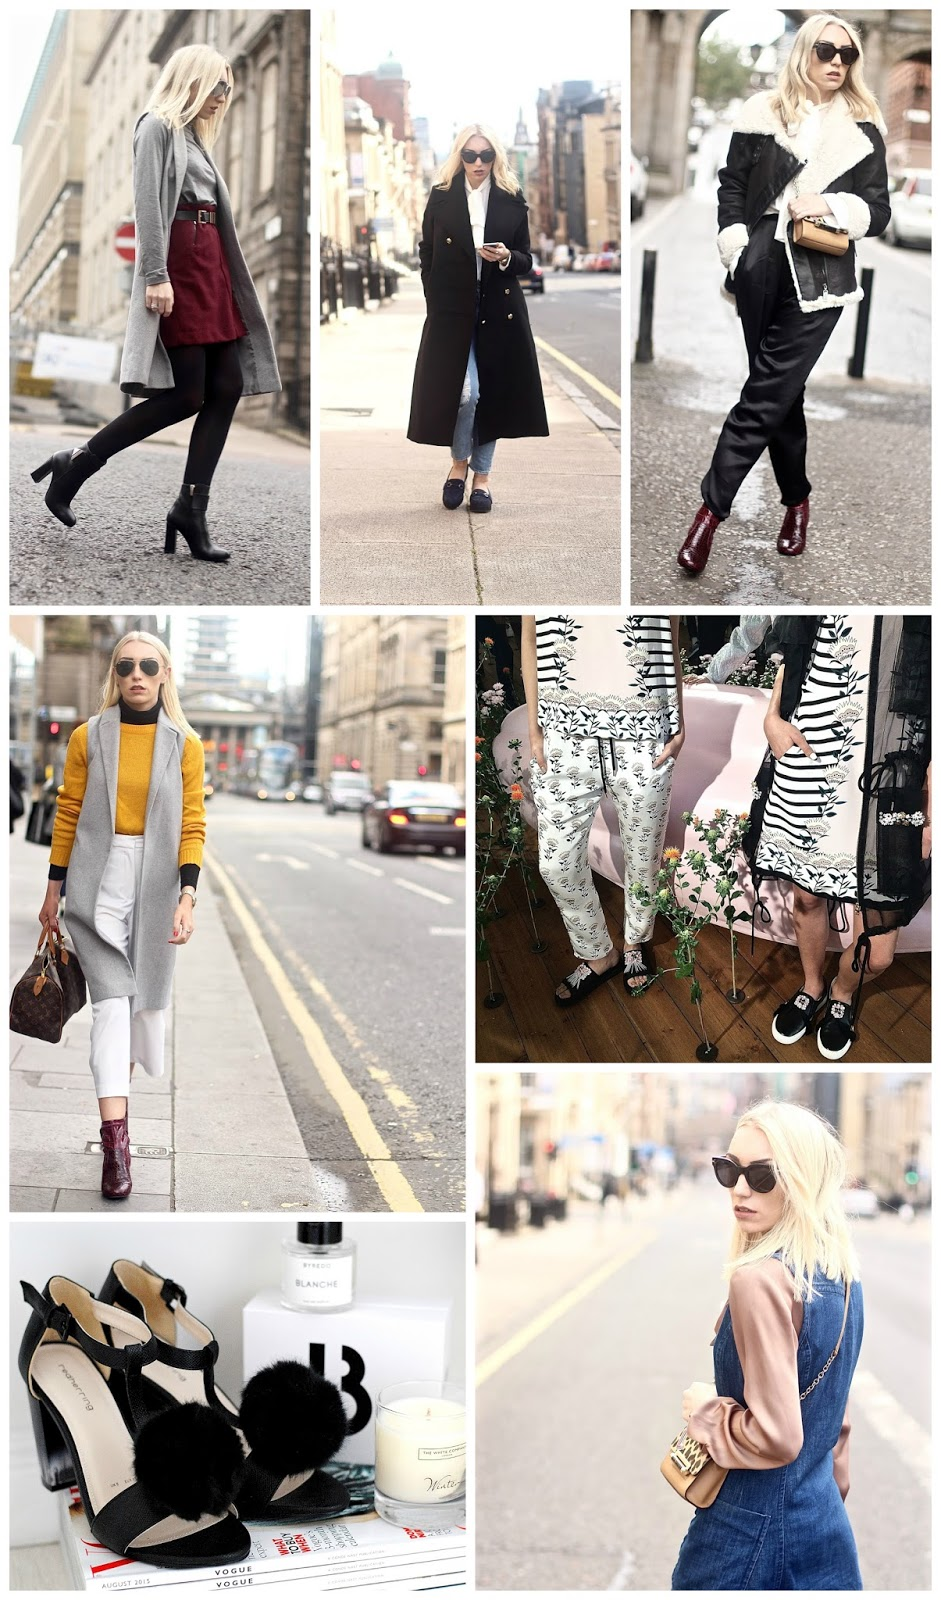 florals and corals, lucy connelly, red herring shows, herald fashion awards finalist, h&m x balmain, fashion blogger, scottish bloggers, #scotstreetstyle